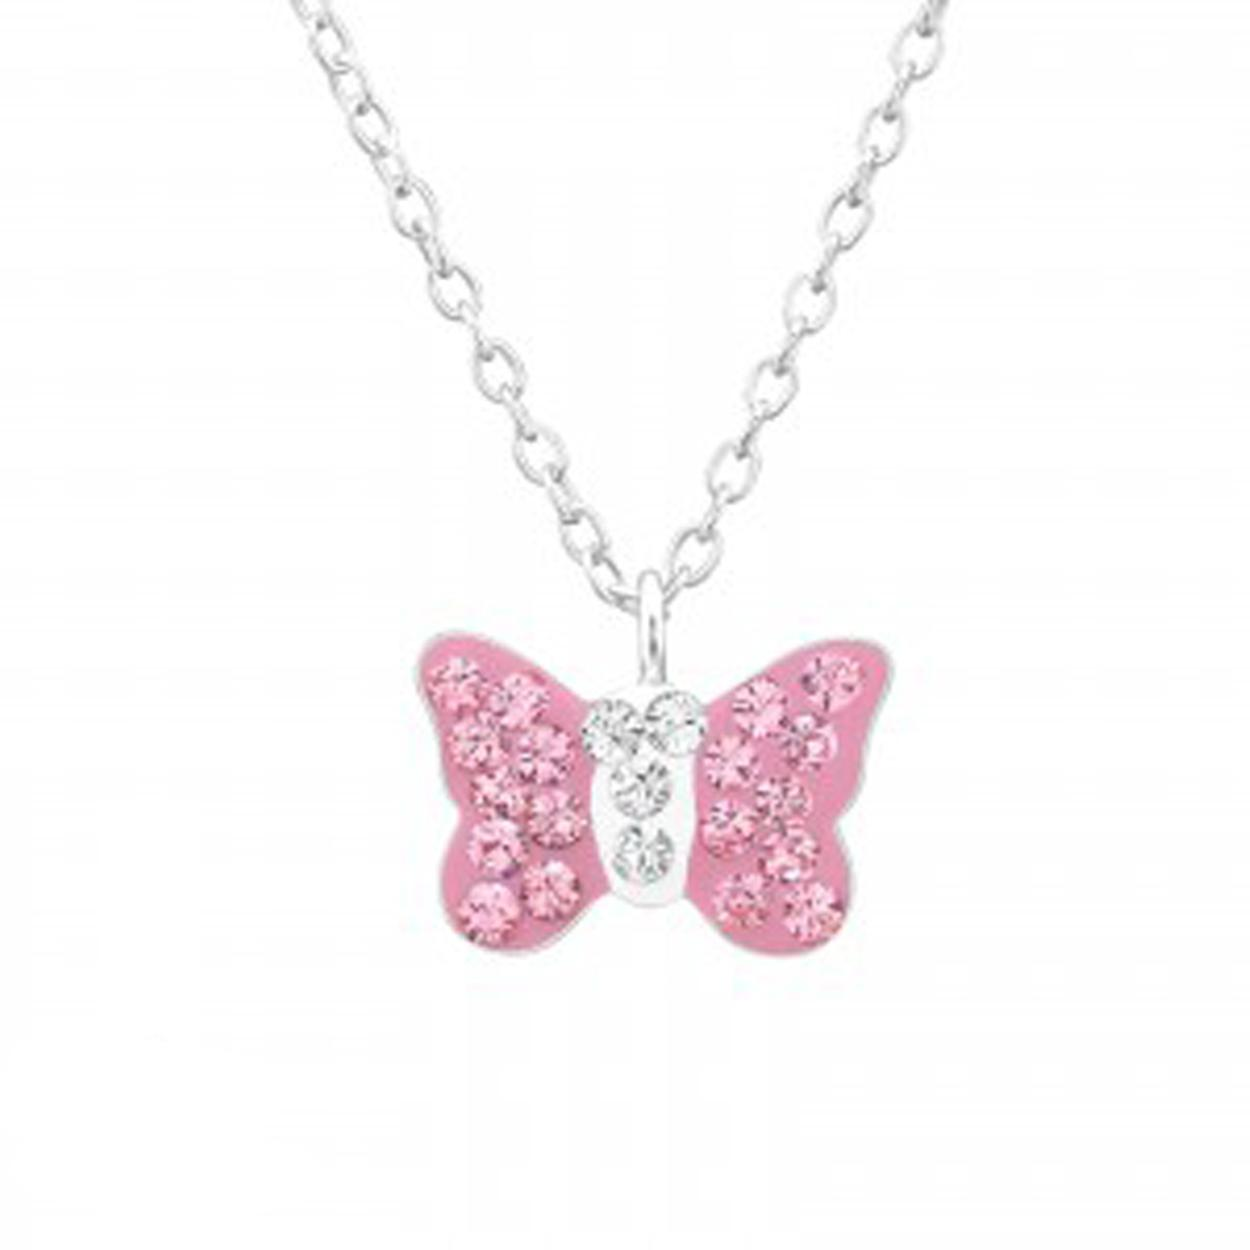 Girls silver necklace with pink Swarovski crystal butterfly pendant